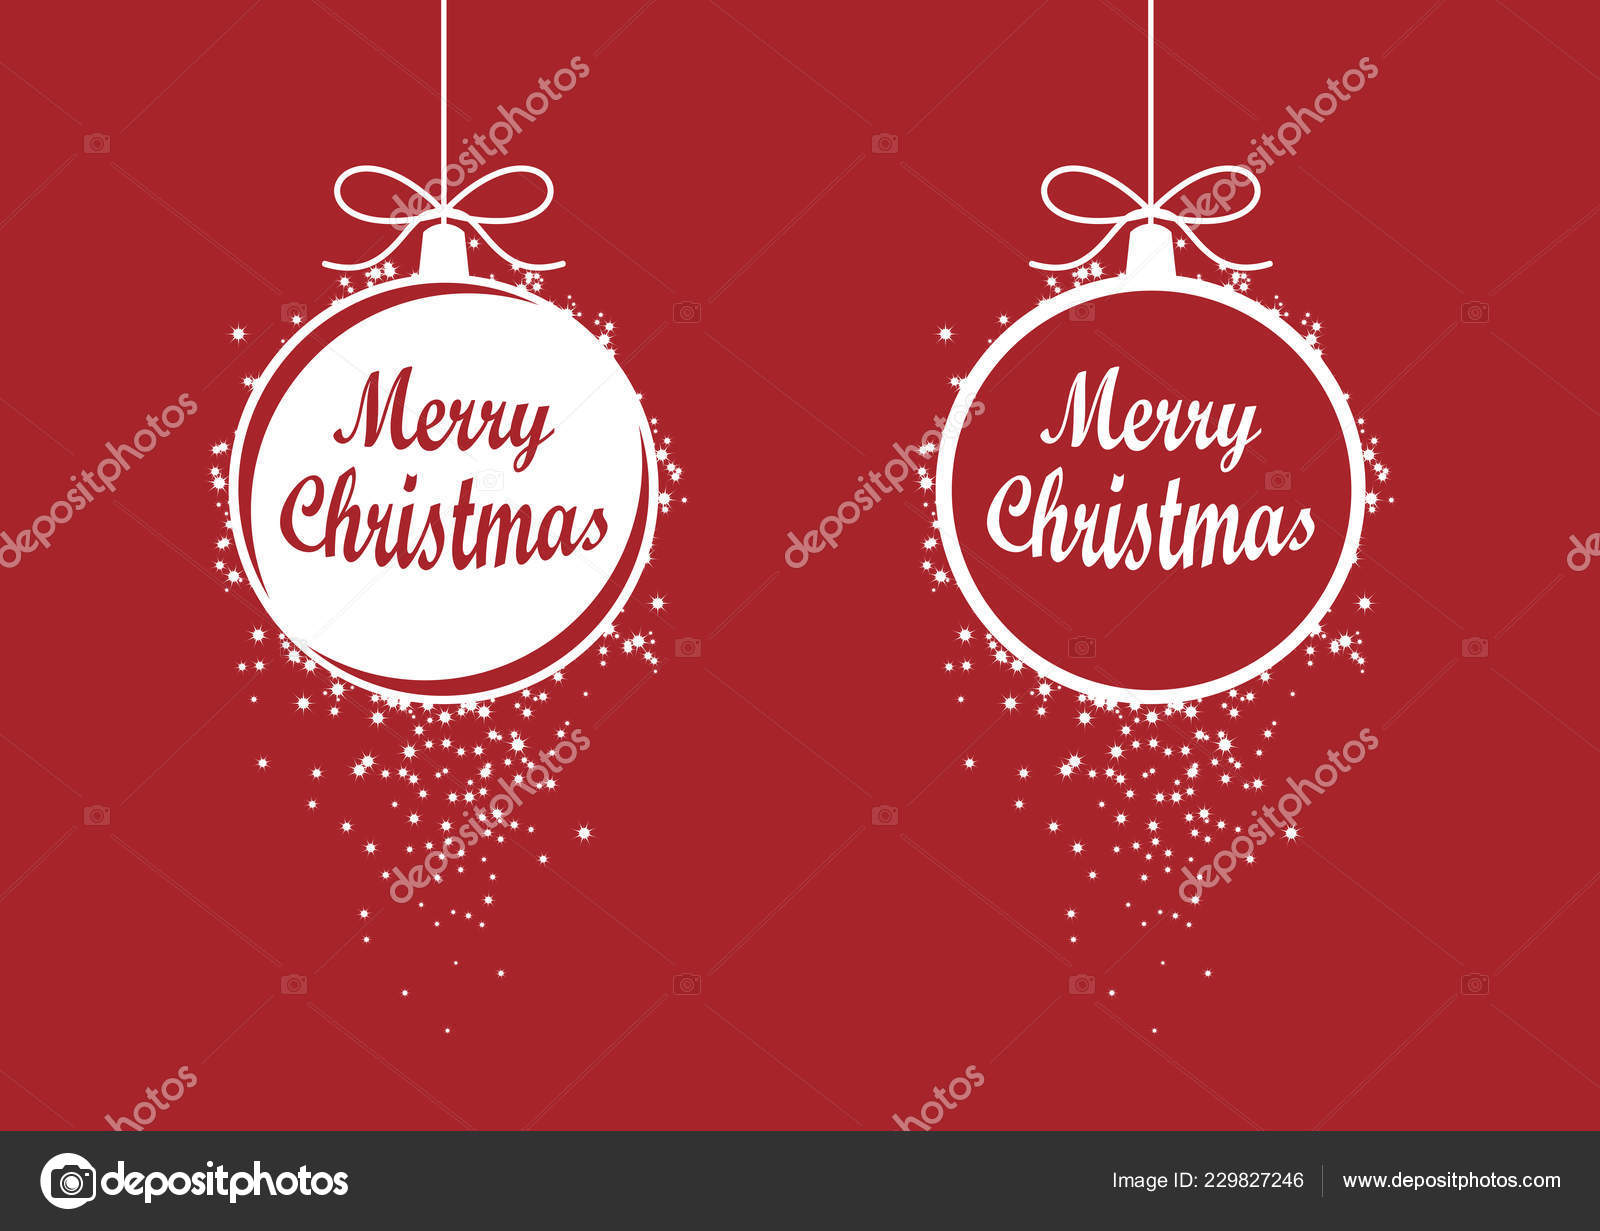 Christmas Ornaments Vector.Merry Christmas Red Ornaments Vector Holiday Background